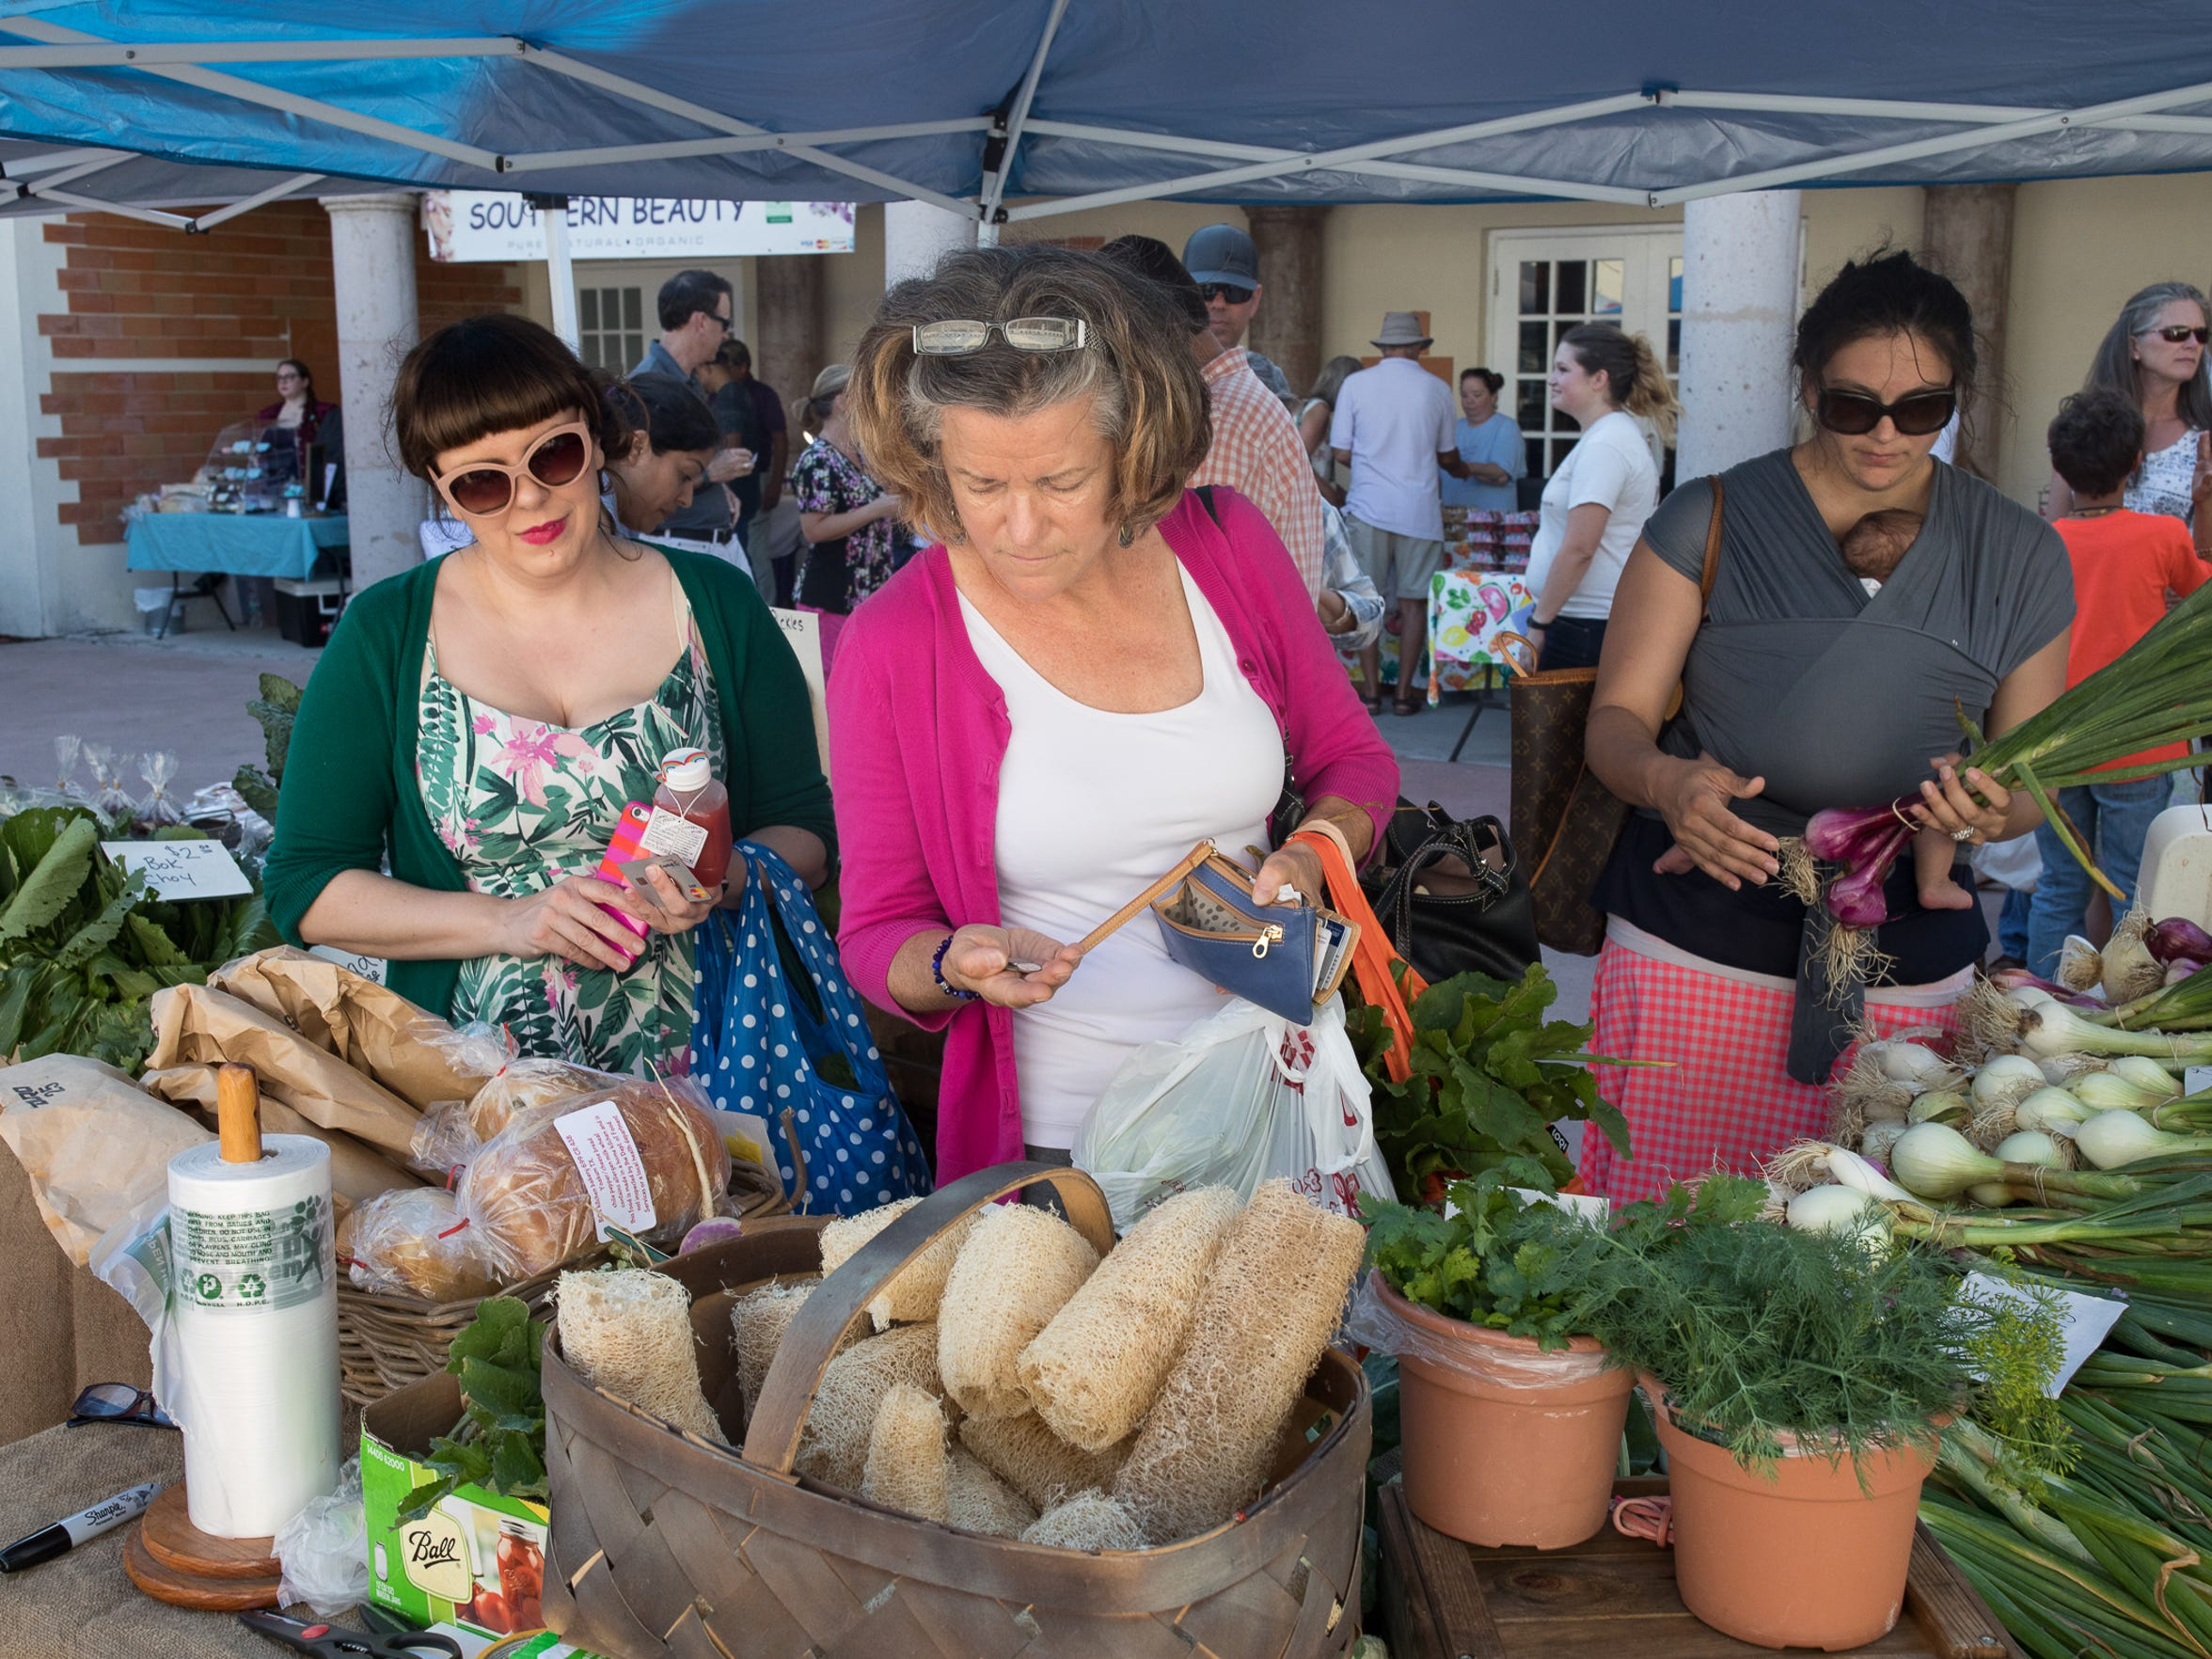 The Corpus Christi Downtown Farmers' Market operates from 5-8 p.m. Wednesdays.